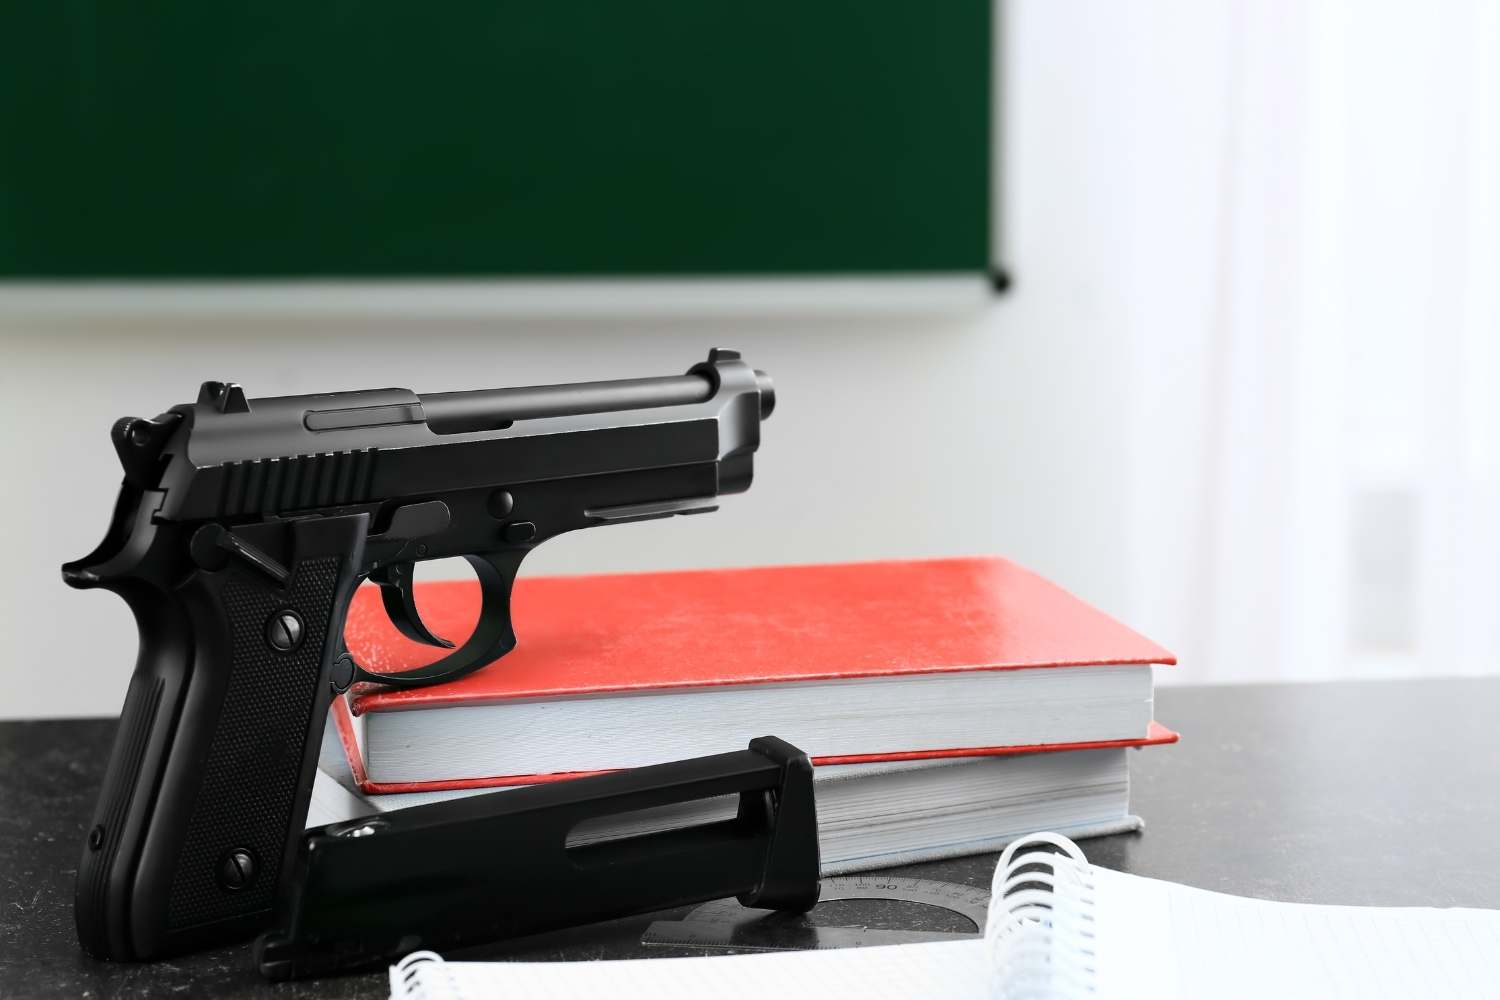 Guns and School Shooting Violence in US